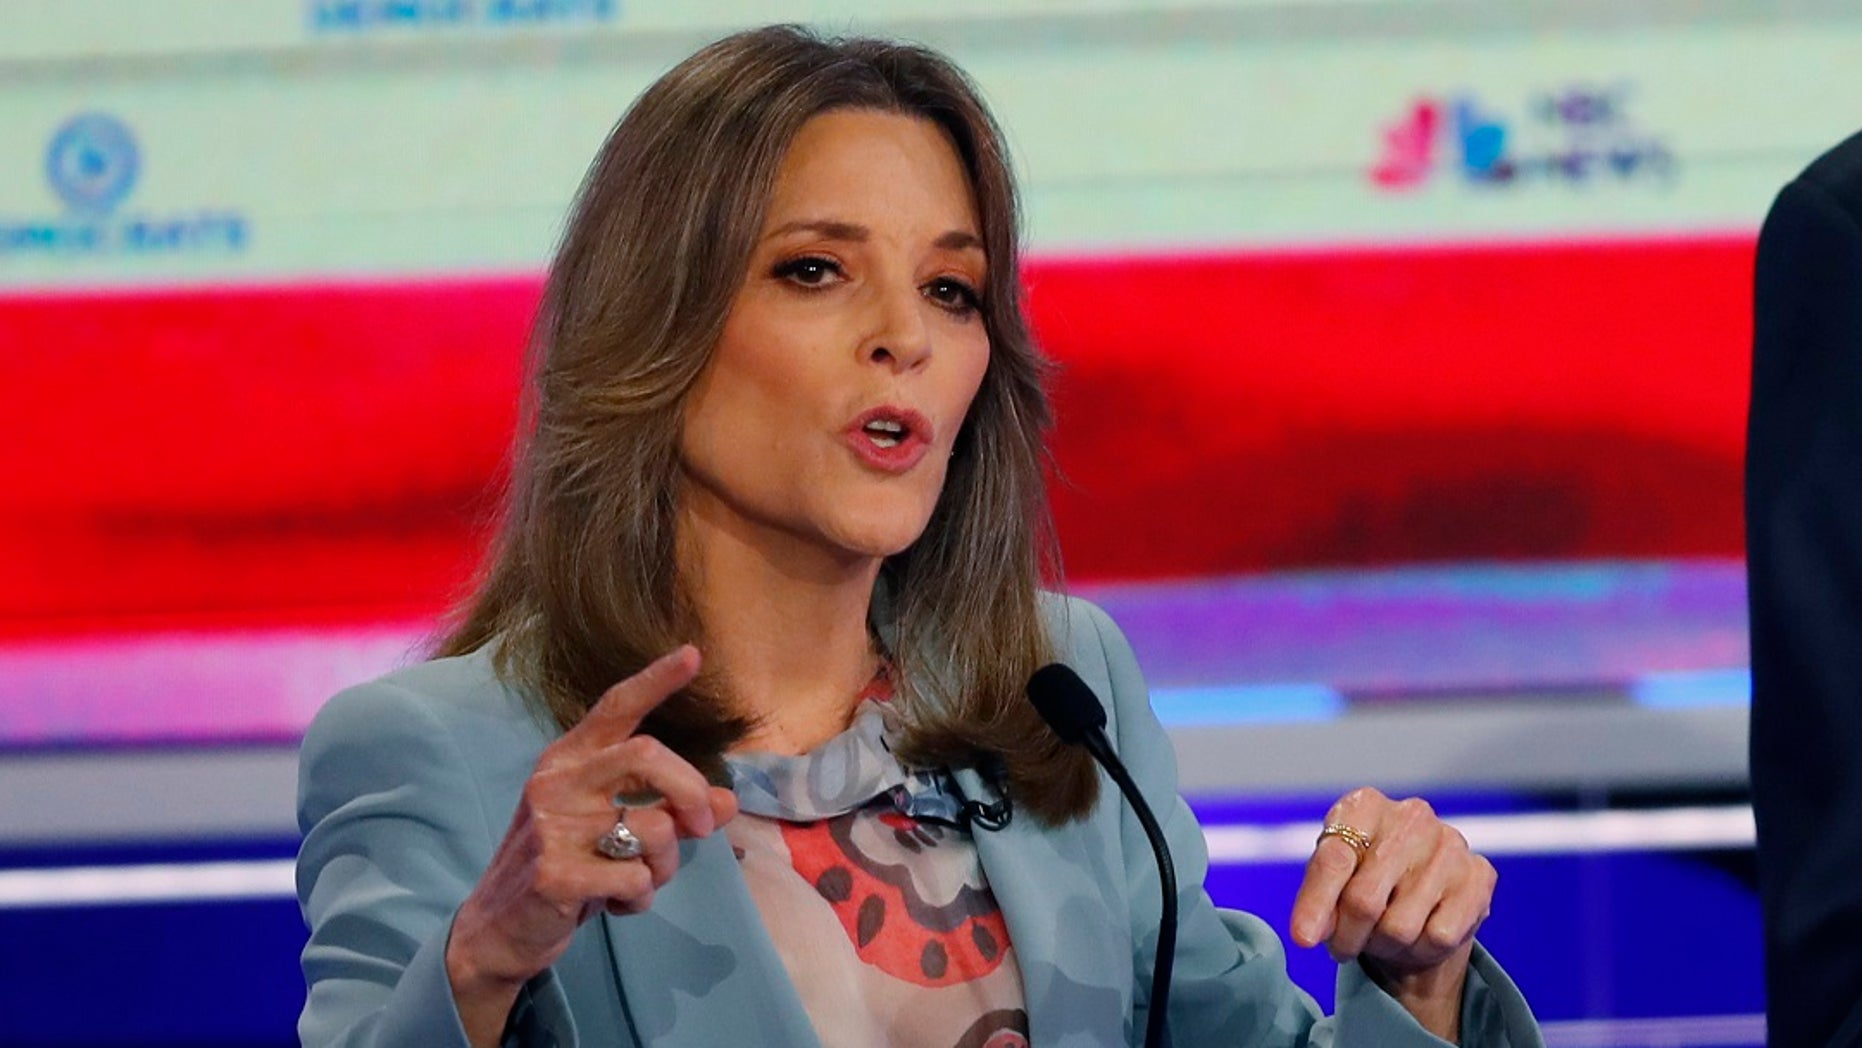 Democratic presidential candidate author Marianne Williamson speaks during the Democratic primary in Miami. (AP Photo/Wilfredo Lee)